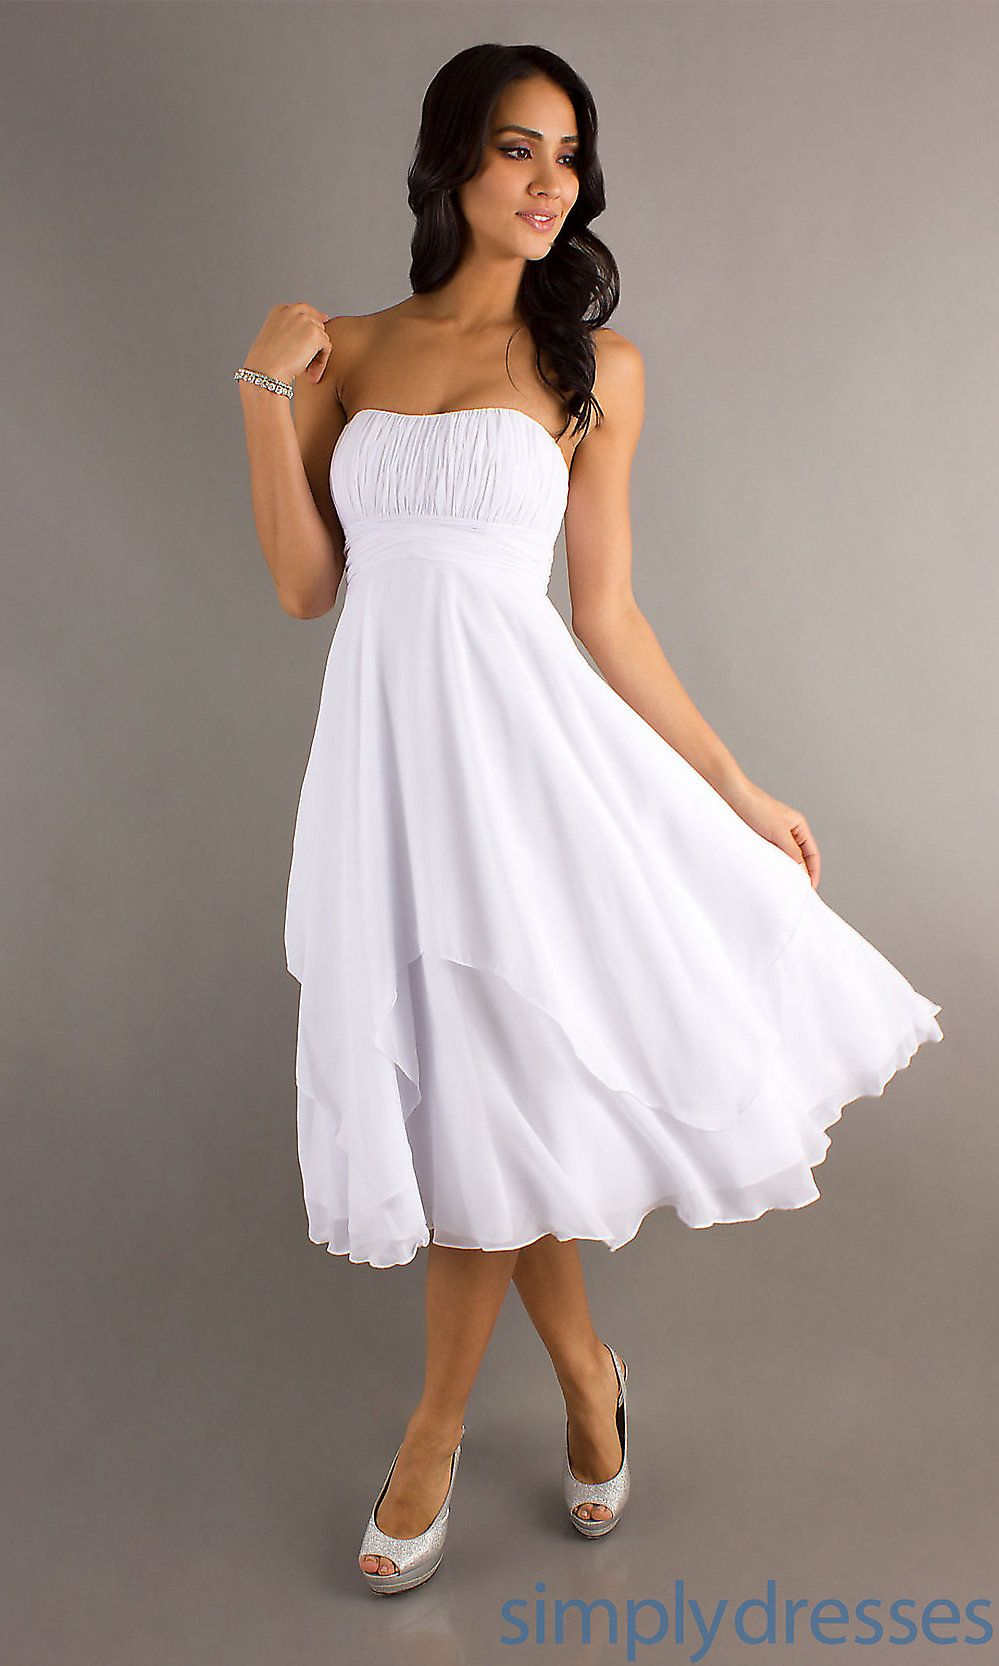 White Formal Dresses For Juniors Photo Album - Reikian